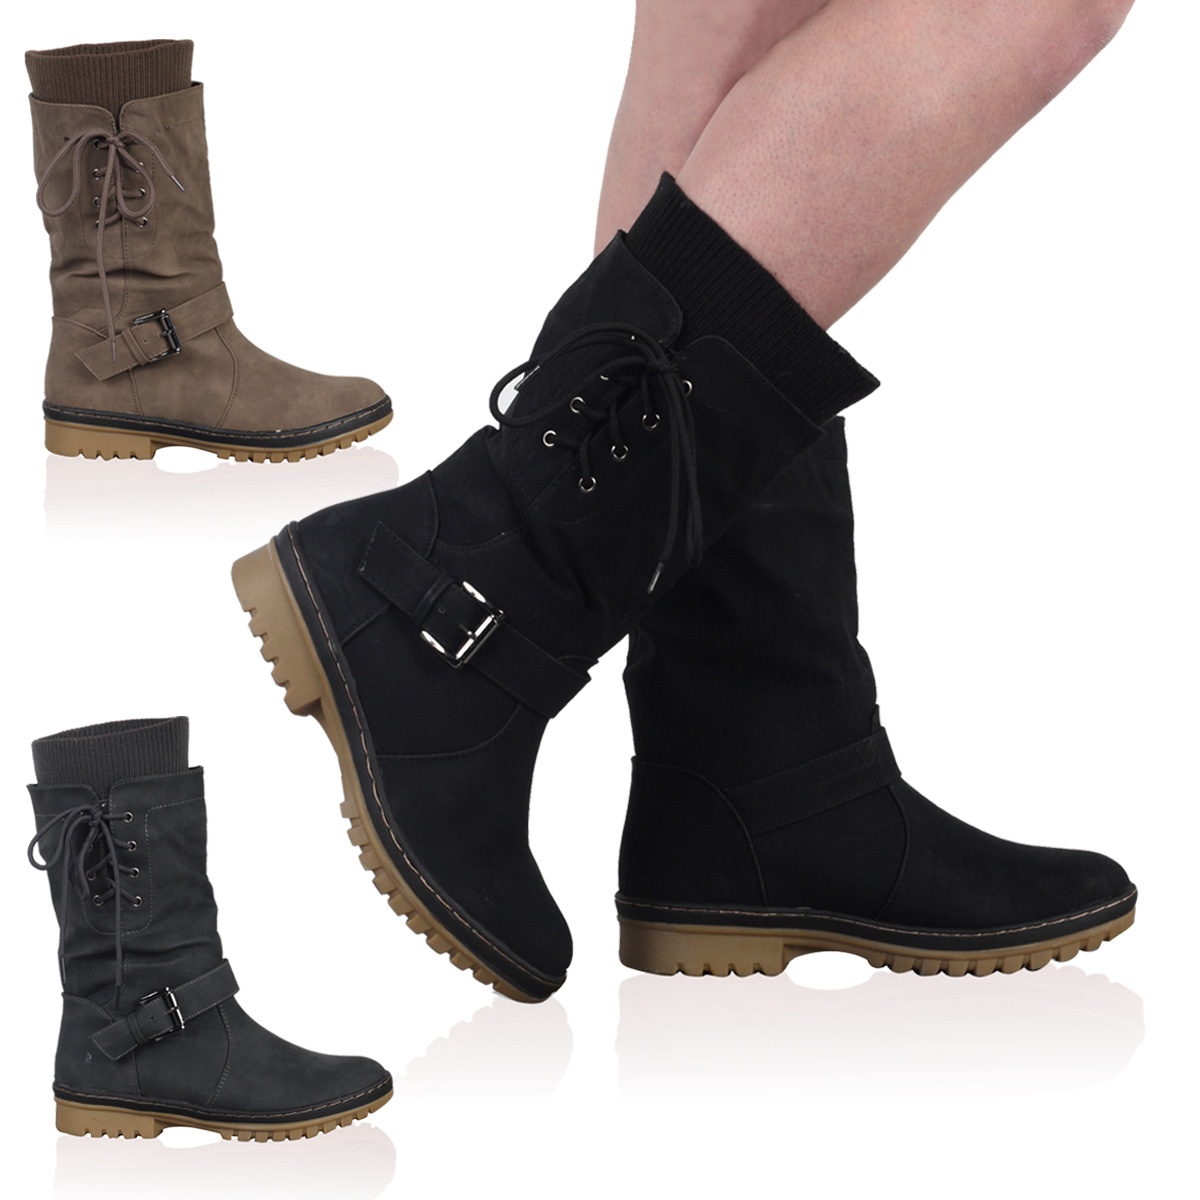 New Ladies Faux Leather Womens Winter Snow Grip Calf Long Boots Shoes Size 4-9